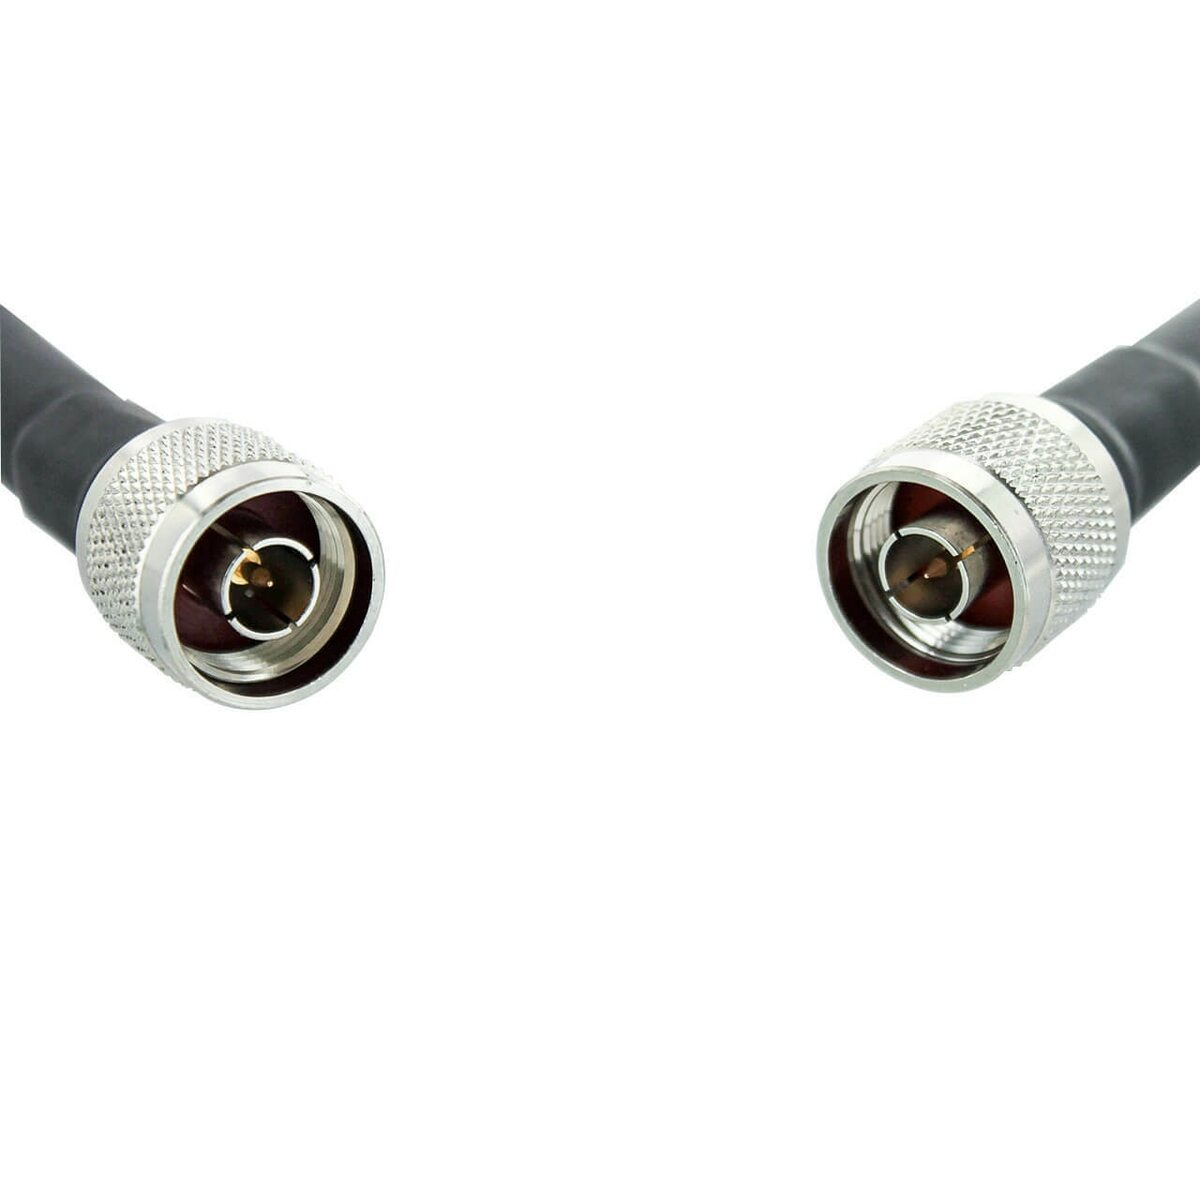 Bolton Technical N-Male to N-Male Bolton400 Ultra Low-Loss Coax Cable   20 ft. Cable